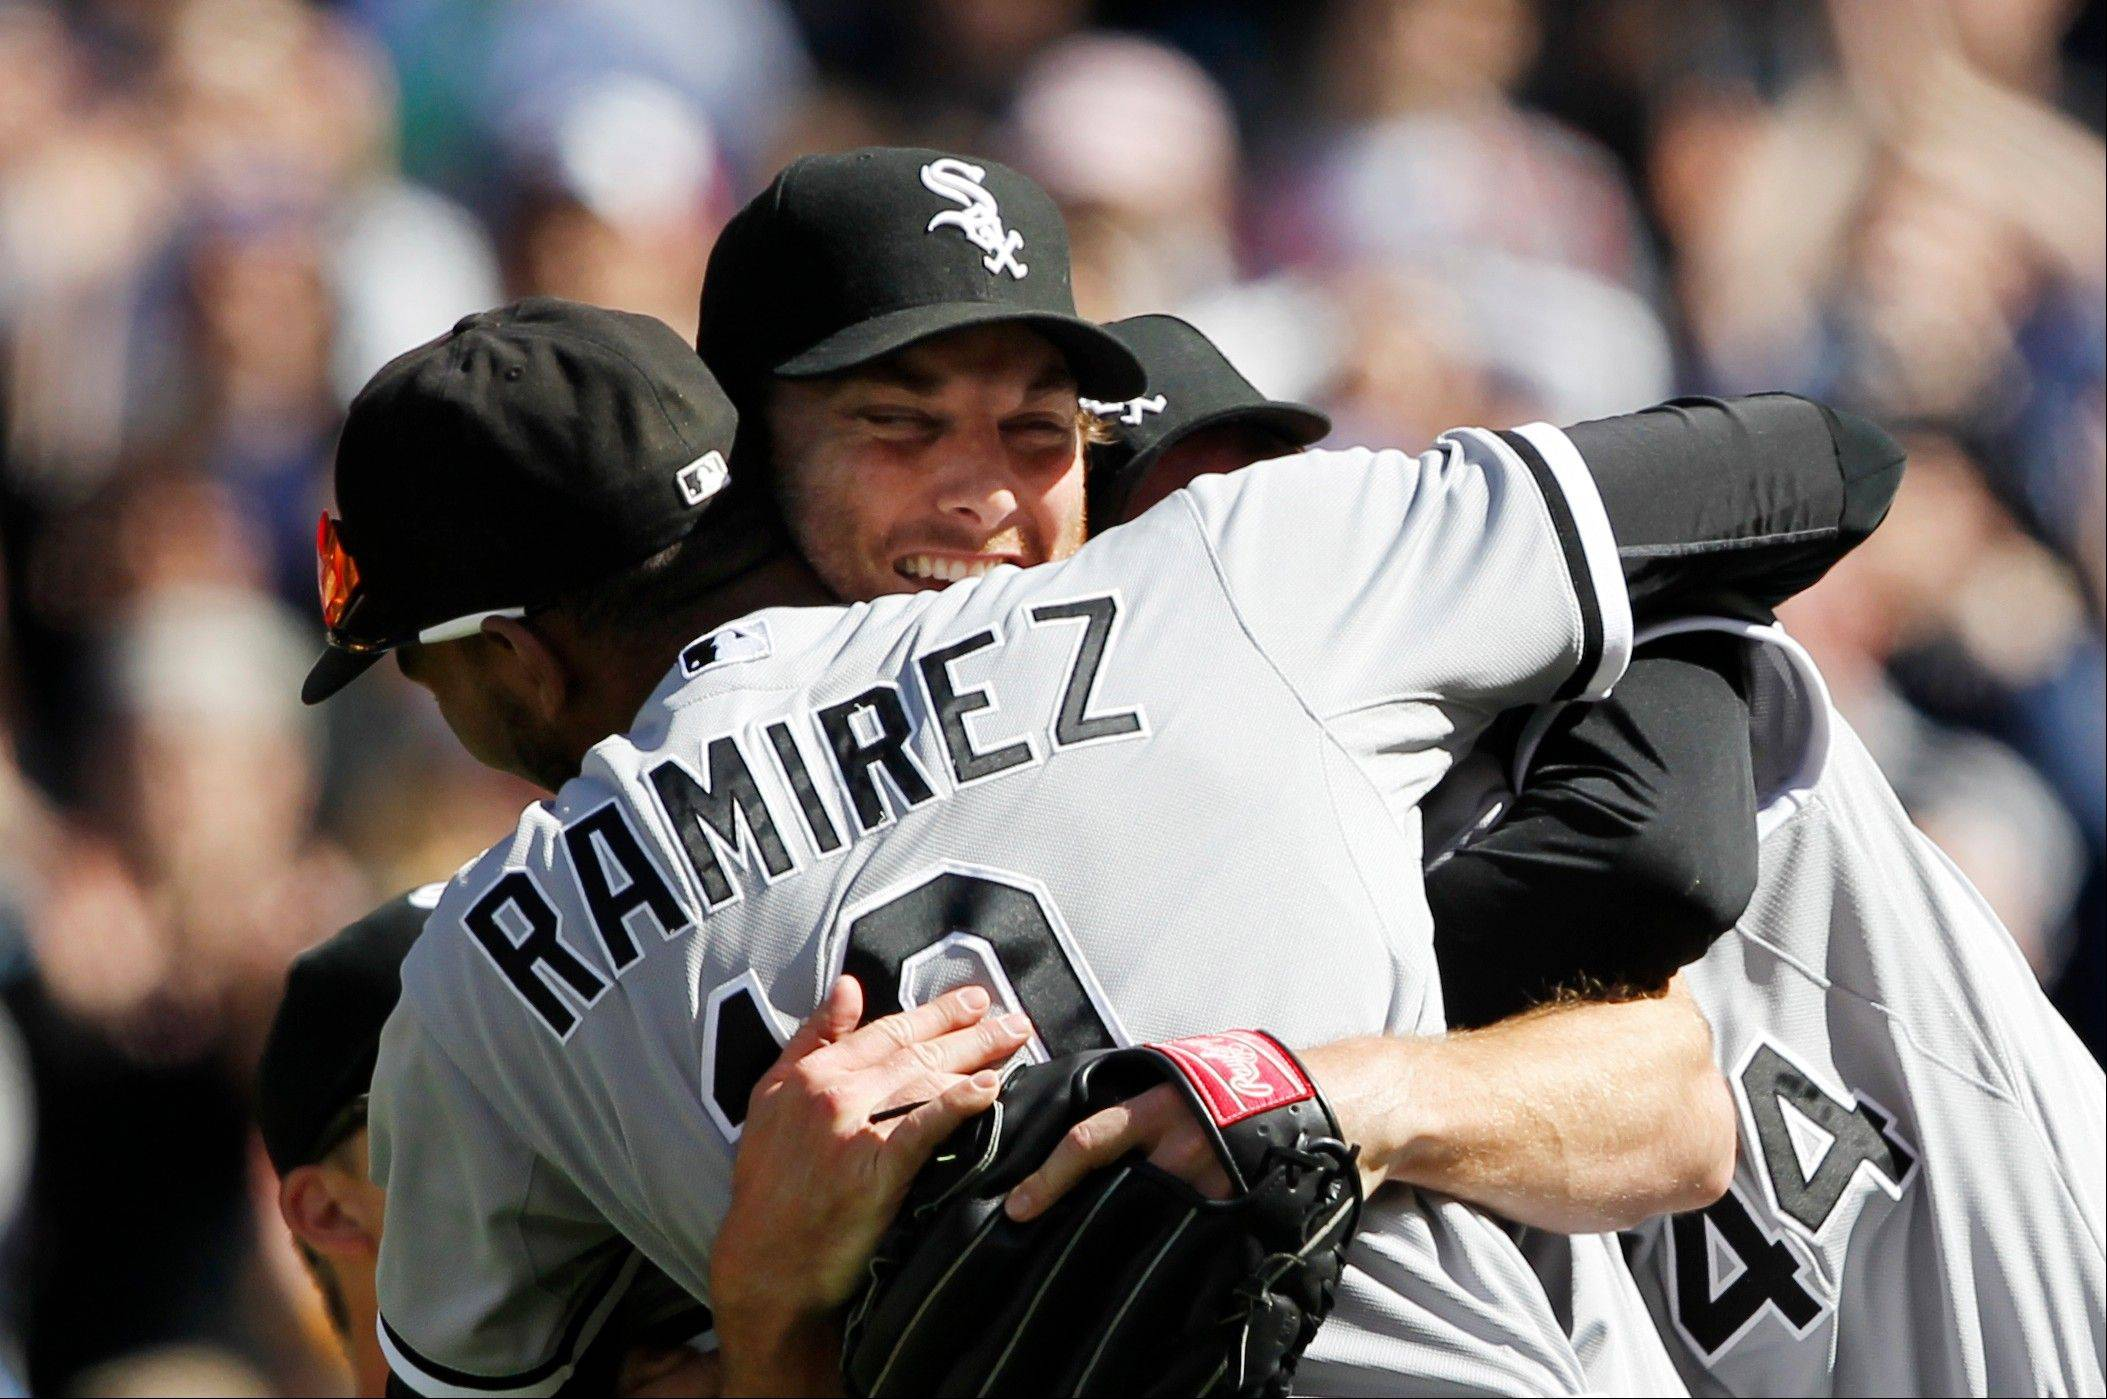 White Sox starting pitcher Phil Humber, center, is mobbed by teammates Saturday after pitching a perfect game.